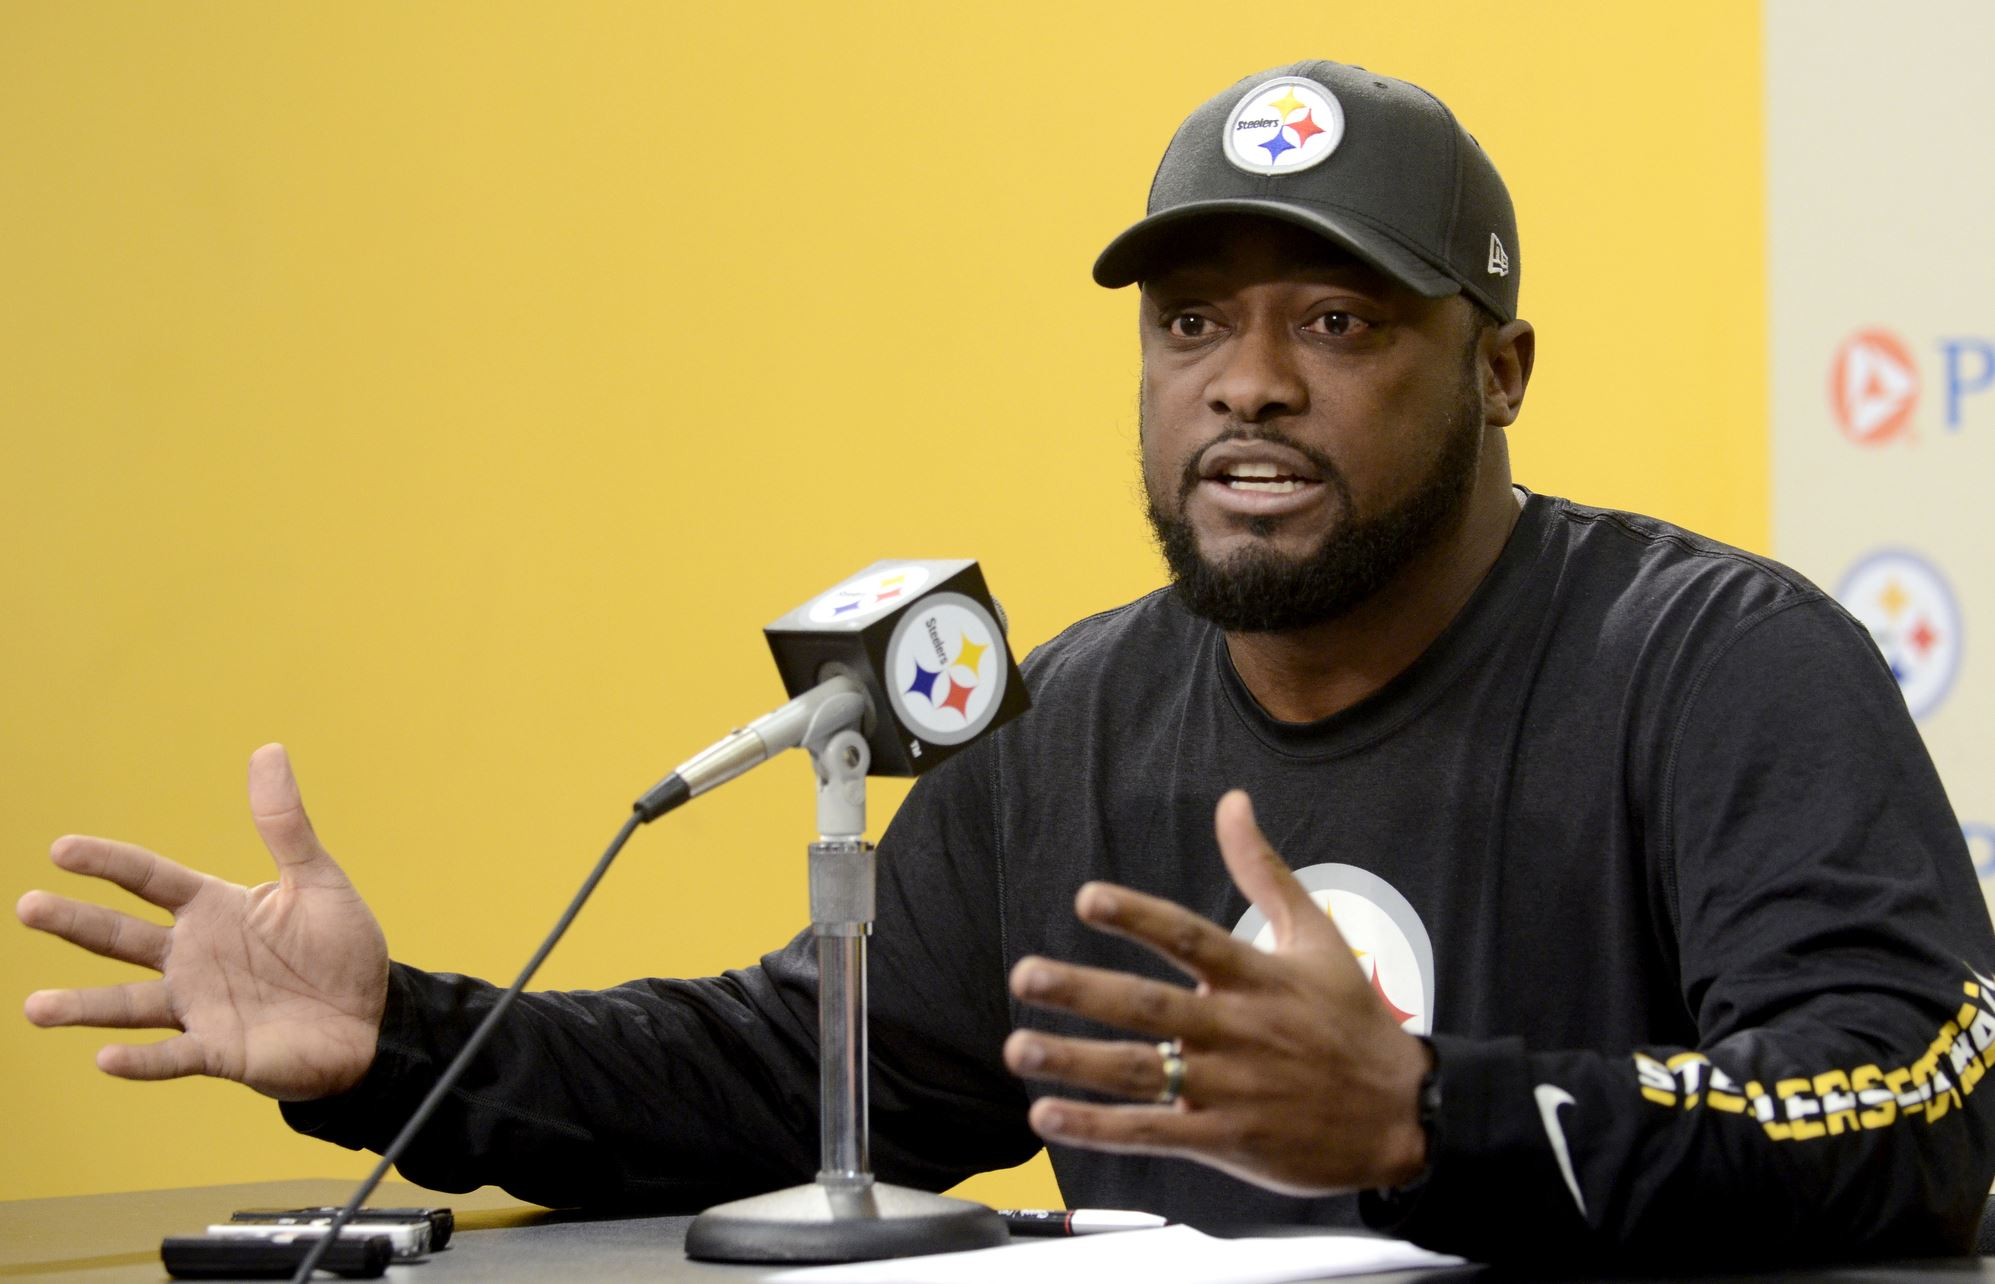 Steelers Extend Mike Tomlin Through 2018 - bettingsports.com